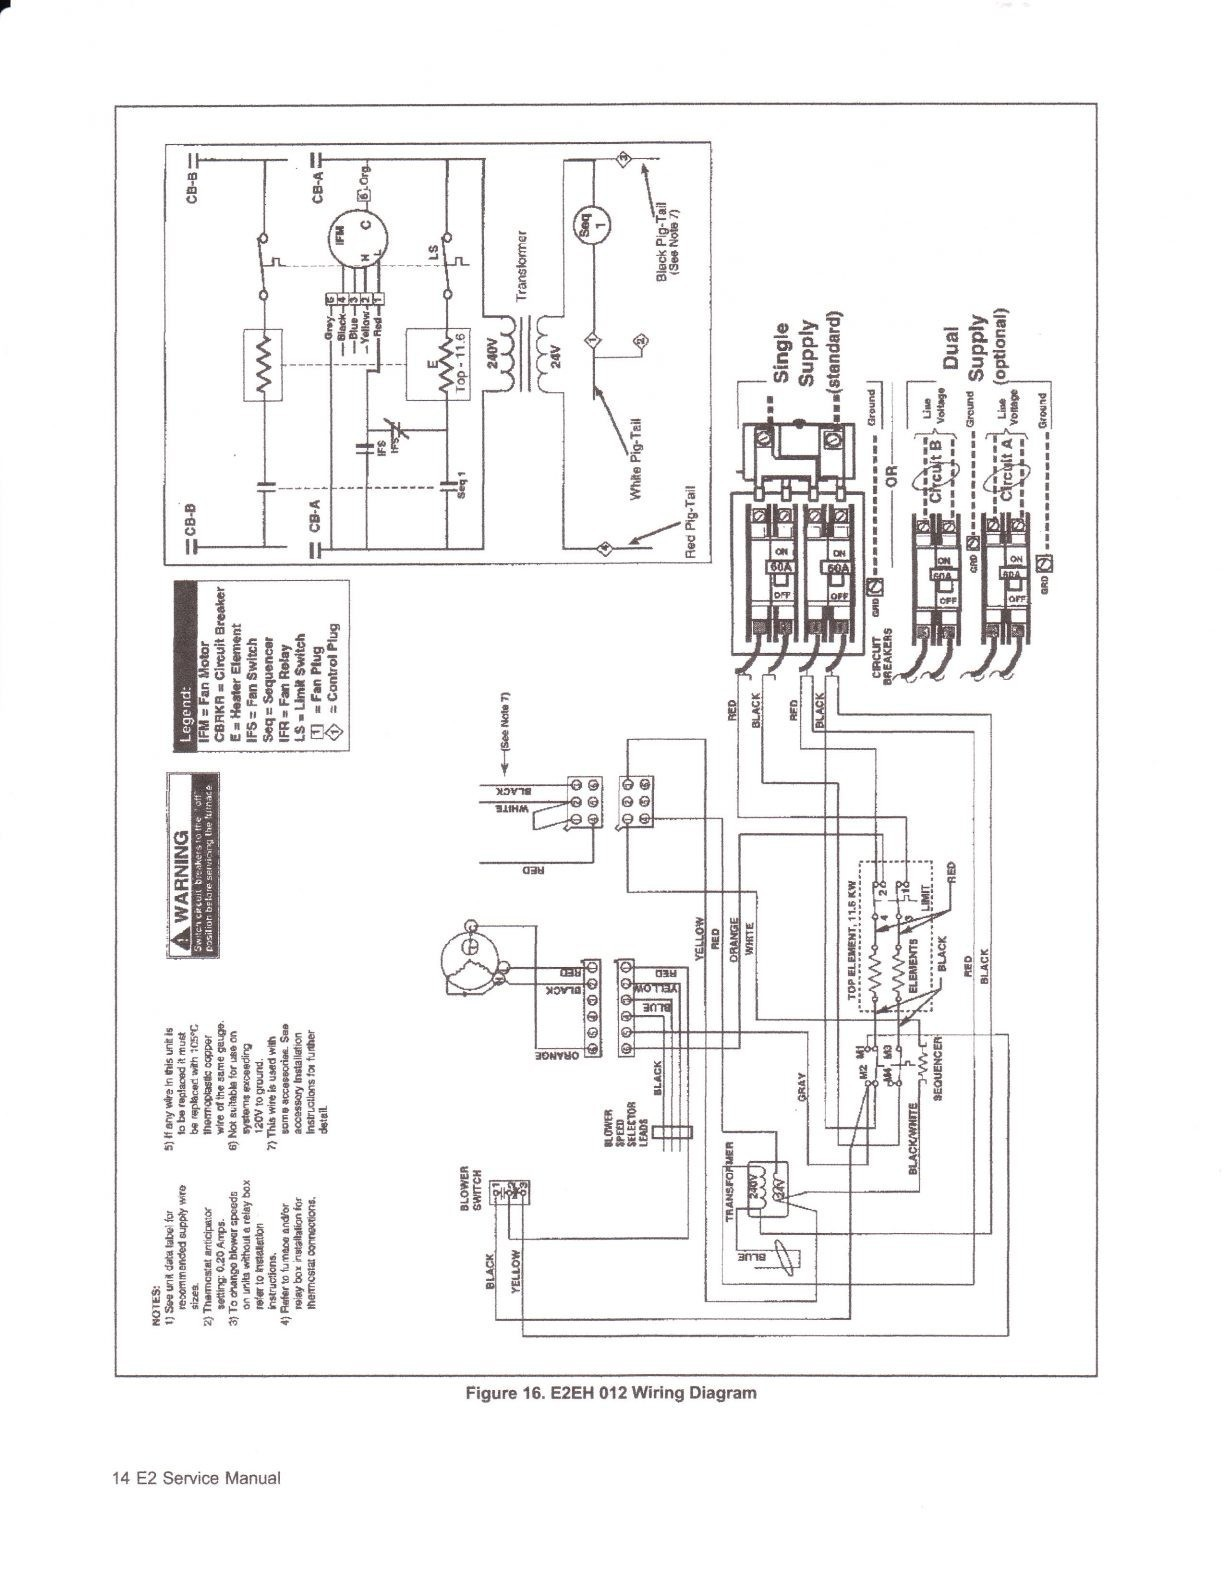 New Electric Furnace Wiring Diagram Sequencer